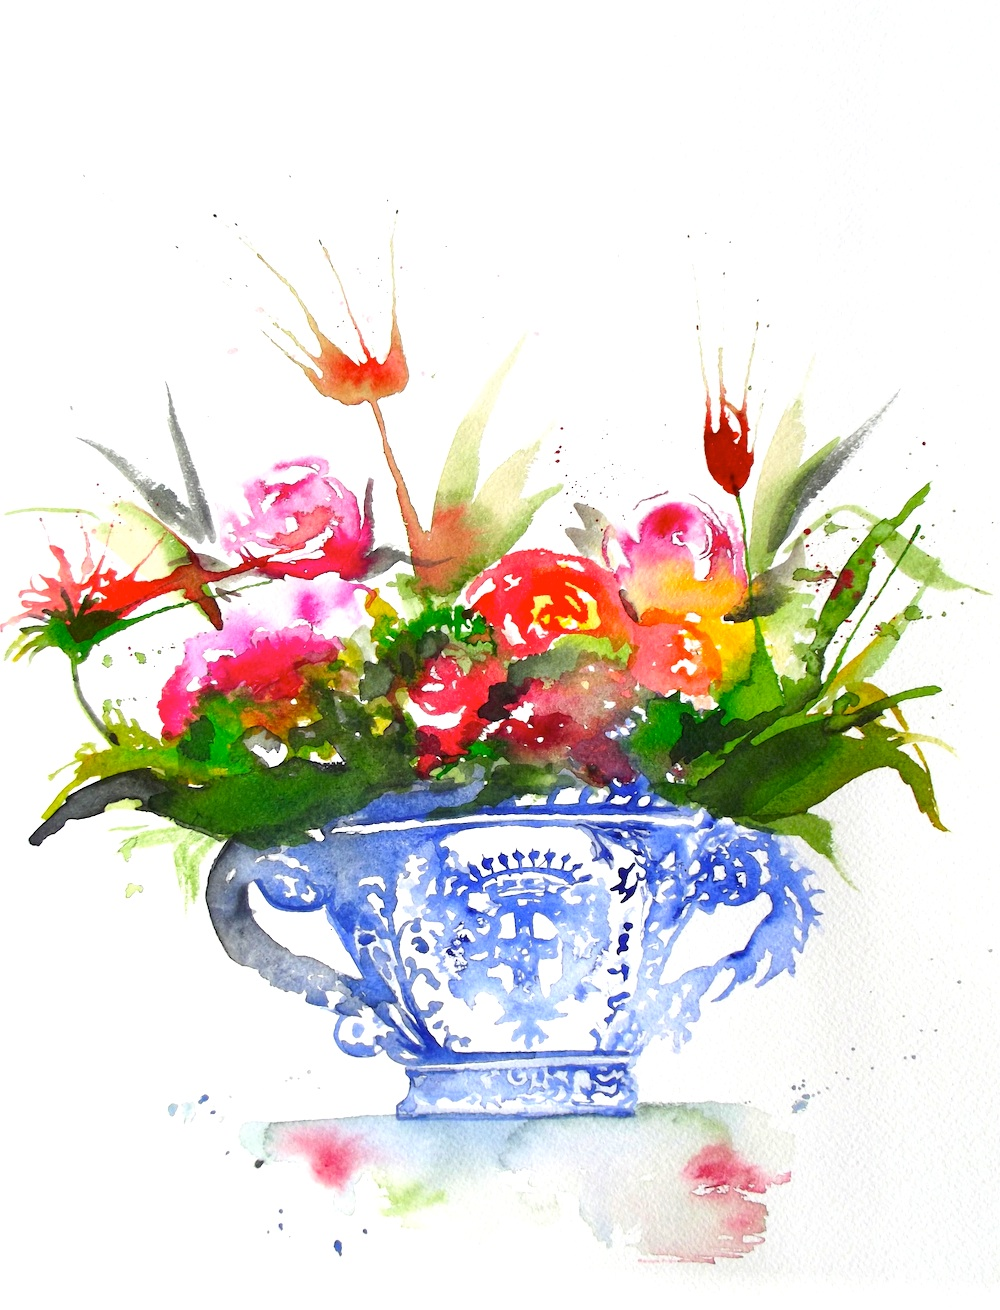 http://www.etsy.com/listing/184144326/flowers-and-blue-china-watercolor-still?ref=shop_home_active_5